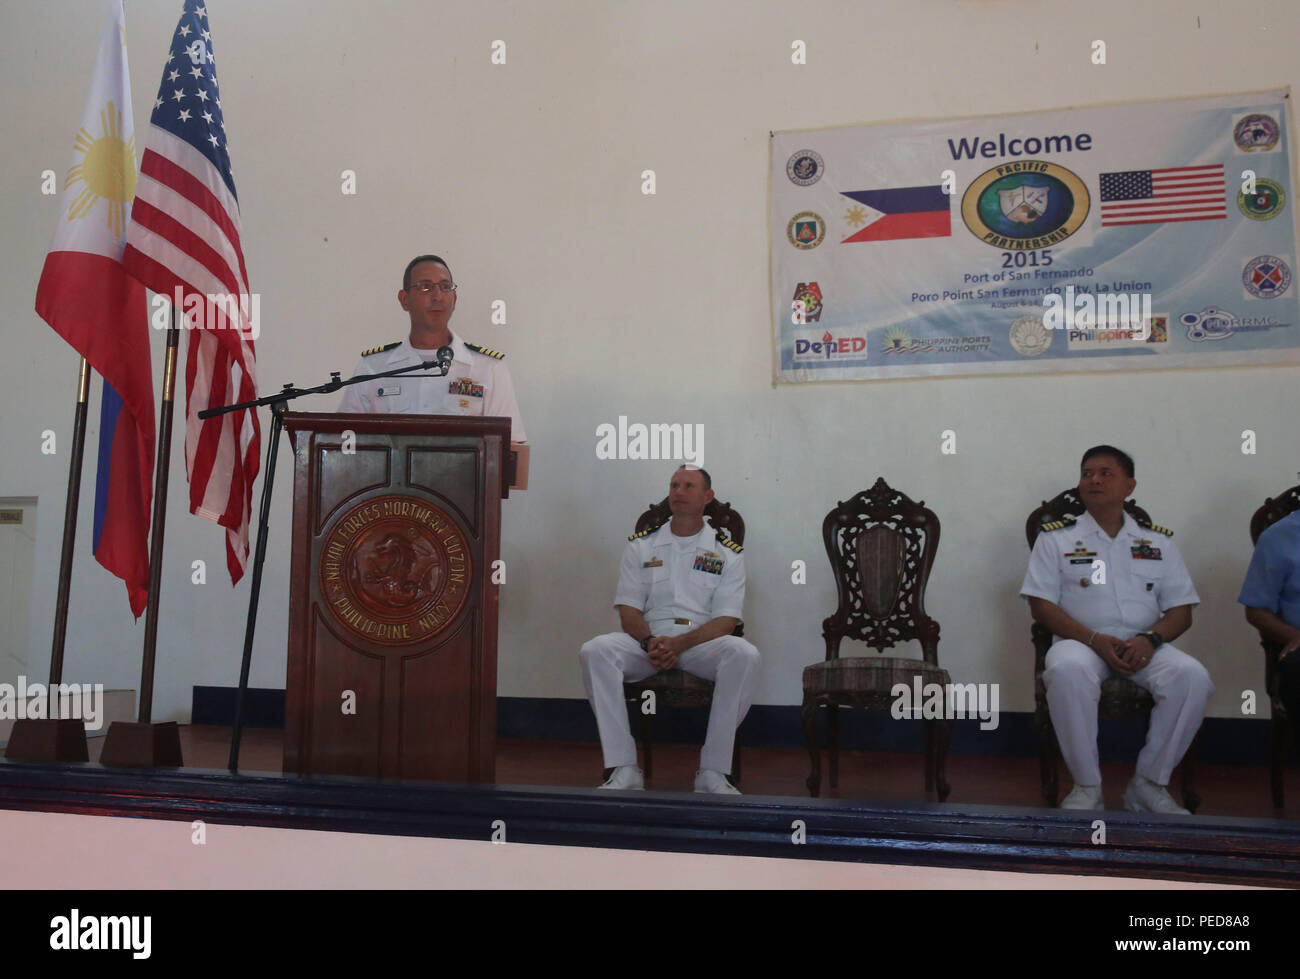 150806-M-GO800-062 SAN FERNANDO CITY, Philippines (August 6, 2015) – Fleet Surgeon at Commander, Seventh Fleet, Capt. Joel Roos, delivers a speech on the importance of working with the Philippines during an opening ceremony Aug. 6. Task Force Forager will be in the Philippines until Aug.15 providing medical and engineering assistance. Task Force Forager, embarked aboard the Military Sealift Command joint high speed vessel USNS Millinocket (JHSV 3) is serving as the secondary platform for Pacific Partnership, led by an expeditionary command element from the Navy's 30th Naval Construction Regime - Stock Image